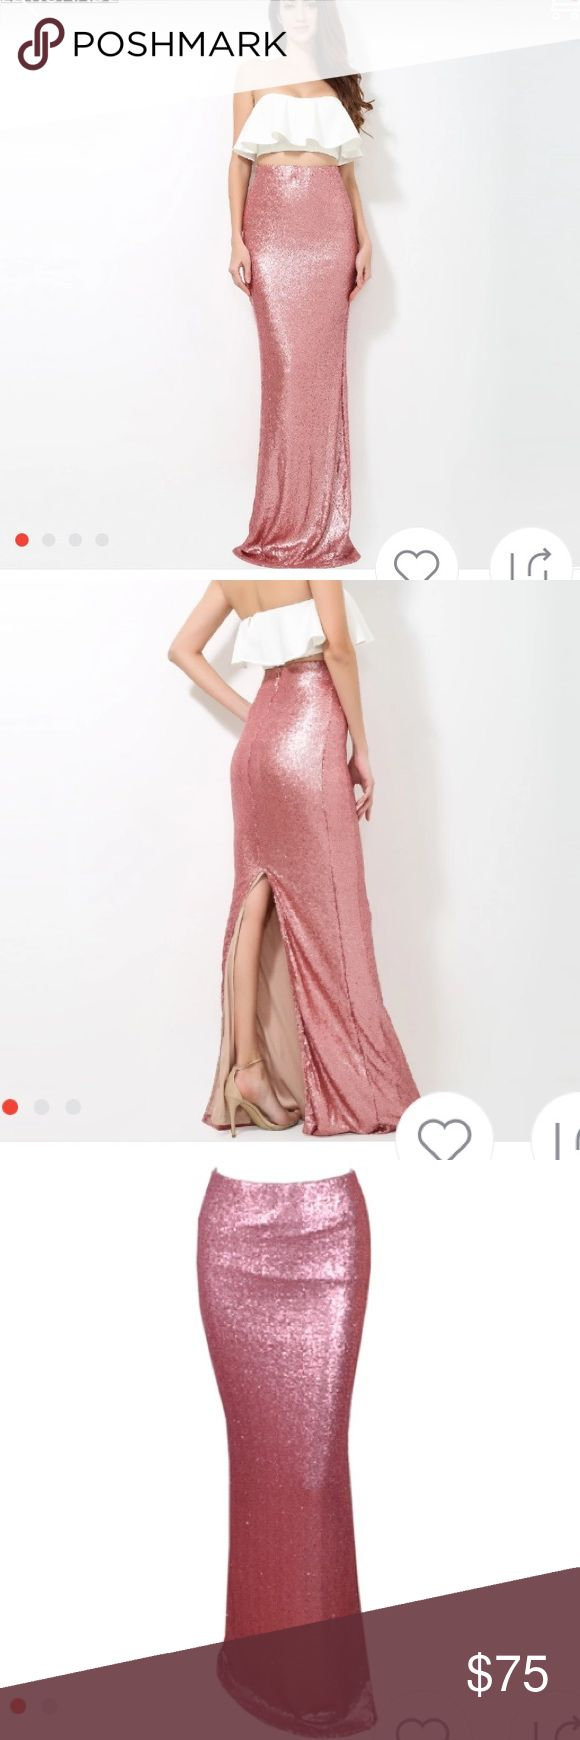 GORGEOUS LONG SEQUIN SKIRT zLONG MAXI FITTED MERMAID STLYE.THE MOST BEAUTIFUL BLUSHY PUNK COLOR🎀SUPER SEXY SUPER SWEET Skirts Maxi